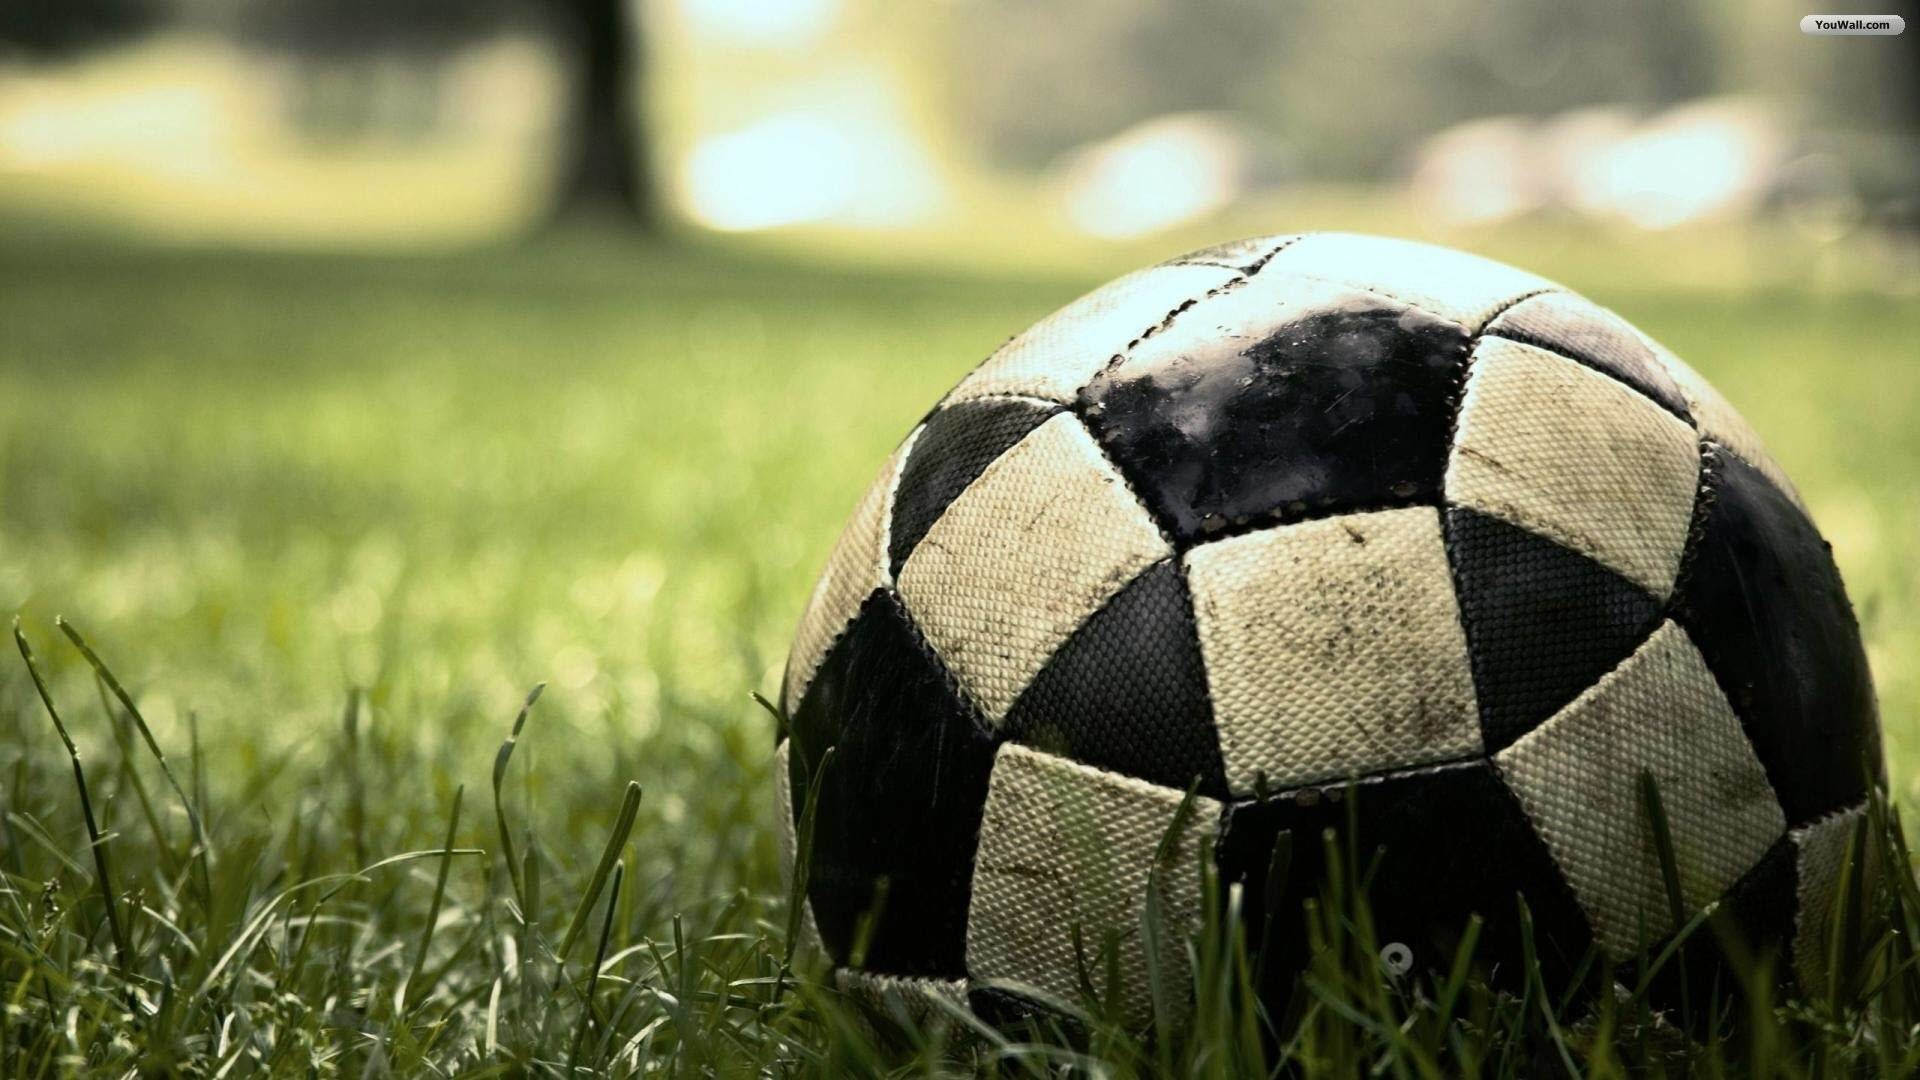 Football HD Wallpapers 1080p (83+ Images